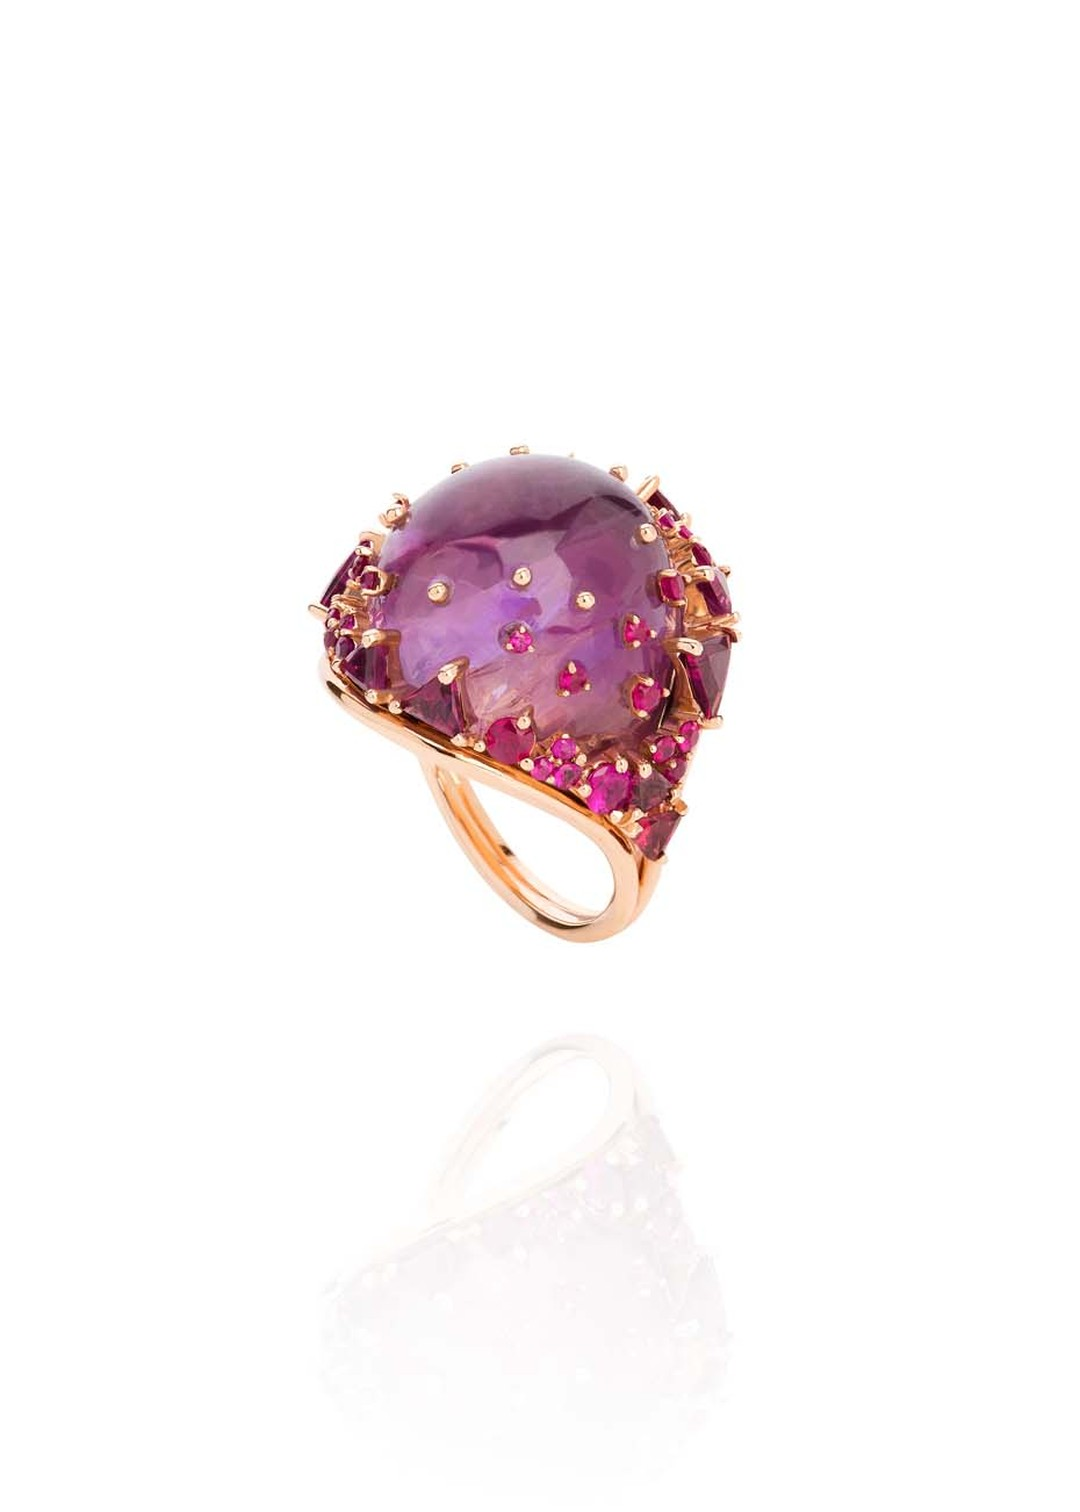 Fernando Jorge Fusion Rounded Ring in rose gold with rubies, rhodolites and amethyst.